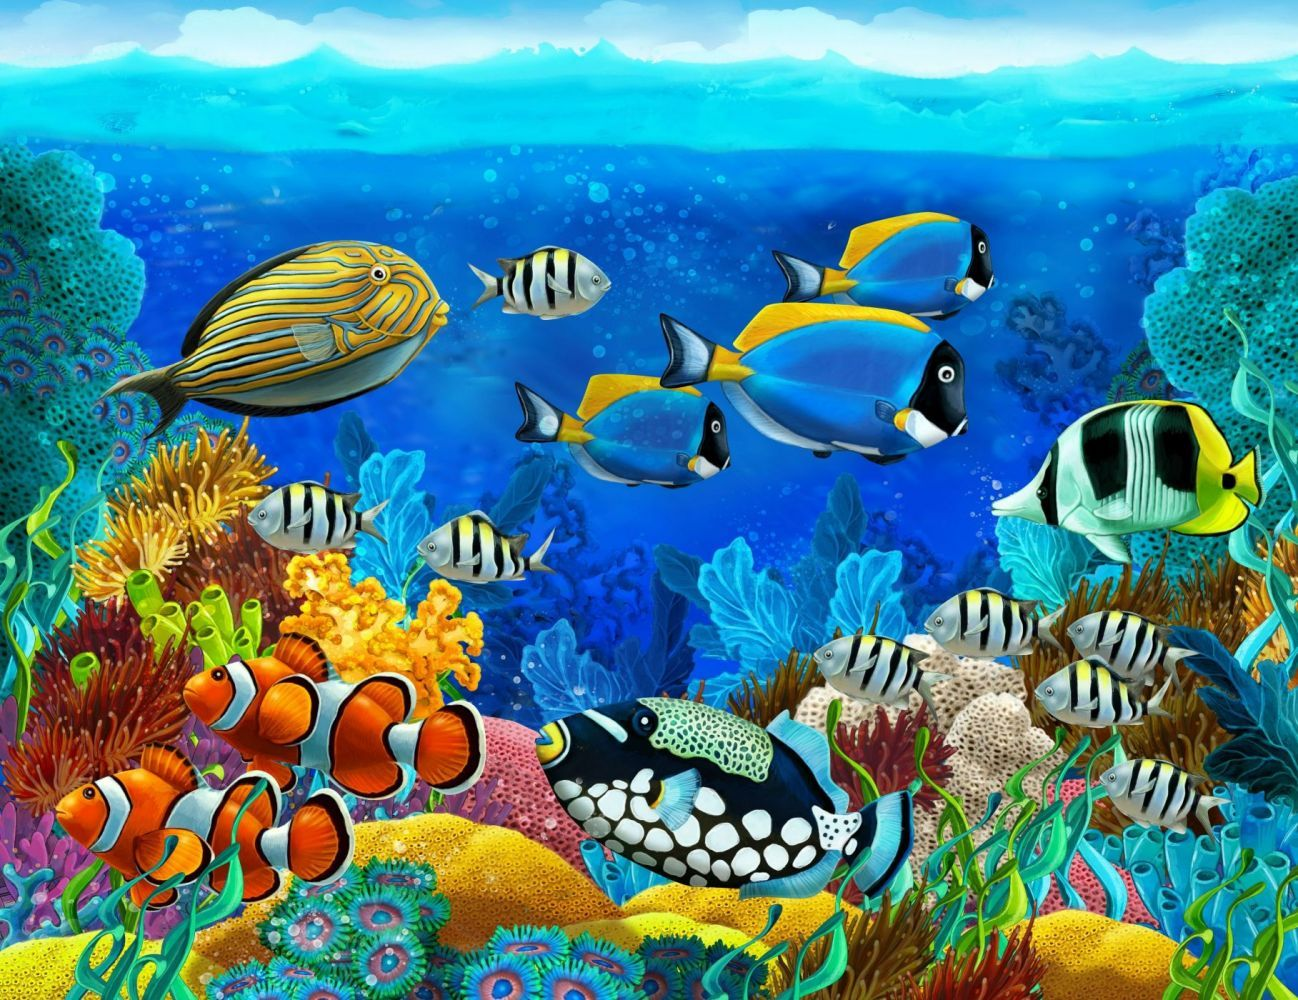 Sea Seabed Fish Corals Underwater Ocean Tropical G Wallpaper Underwater Wallpaper Underwater Painting Fish Painting